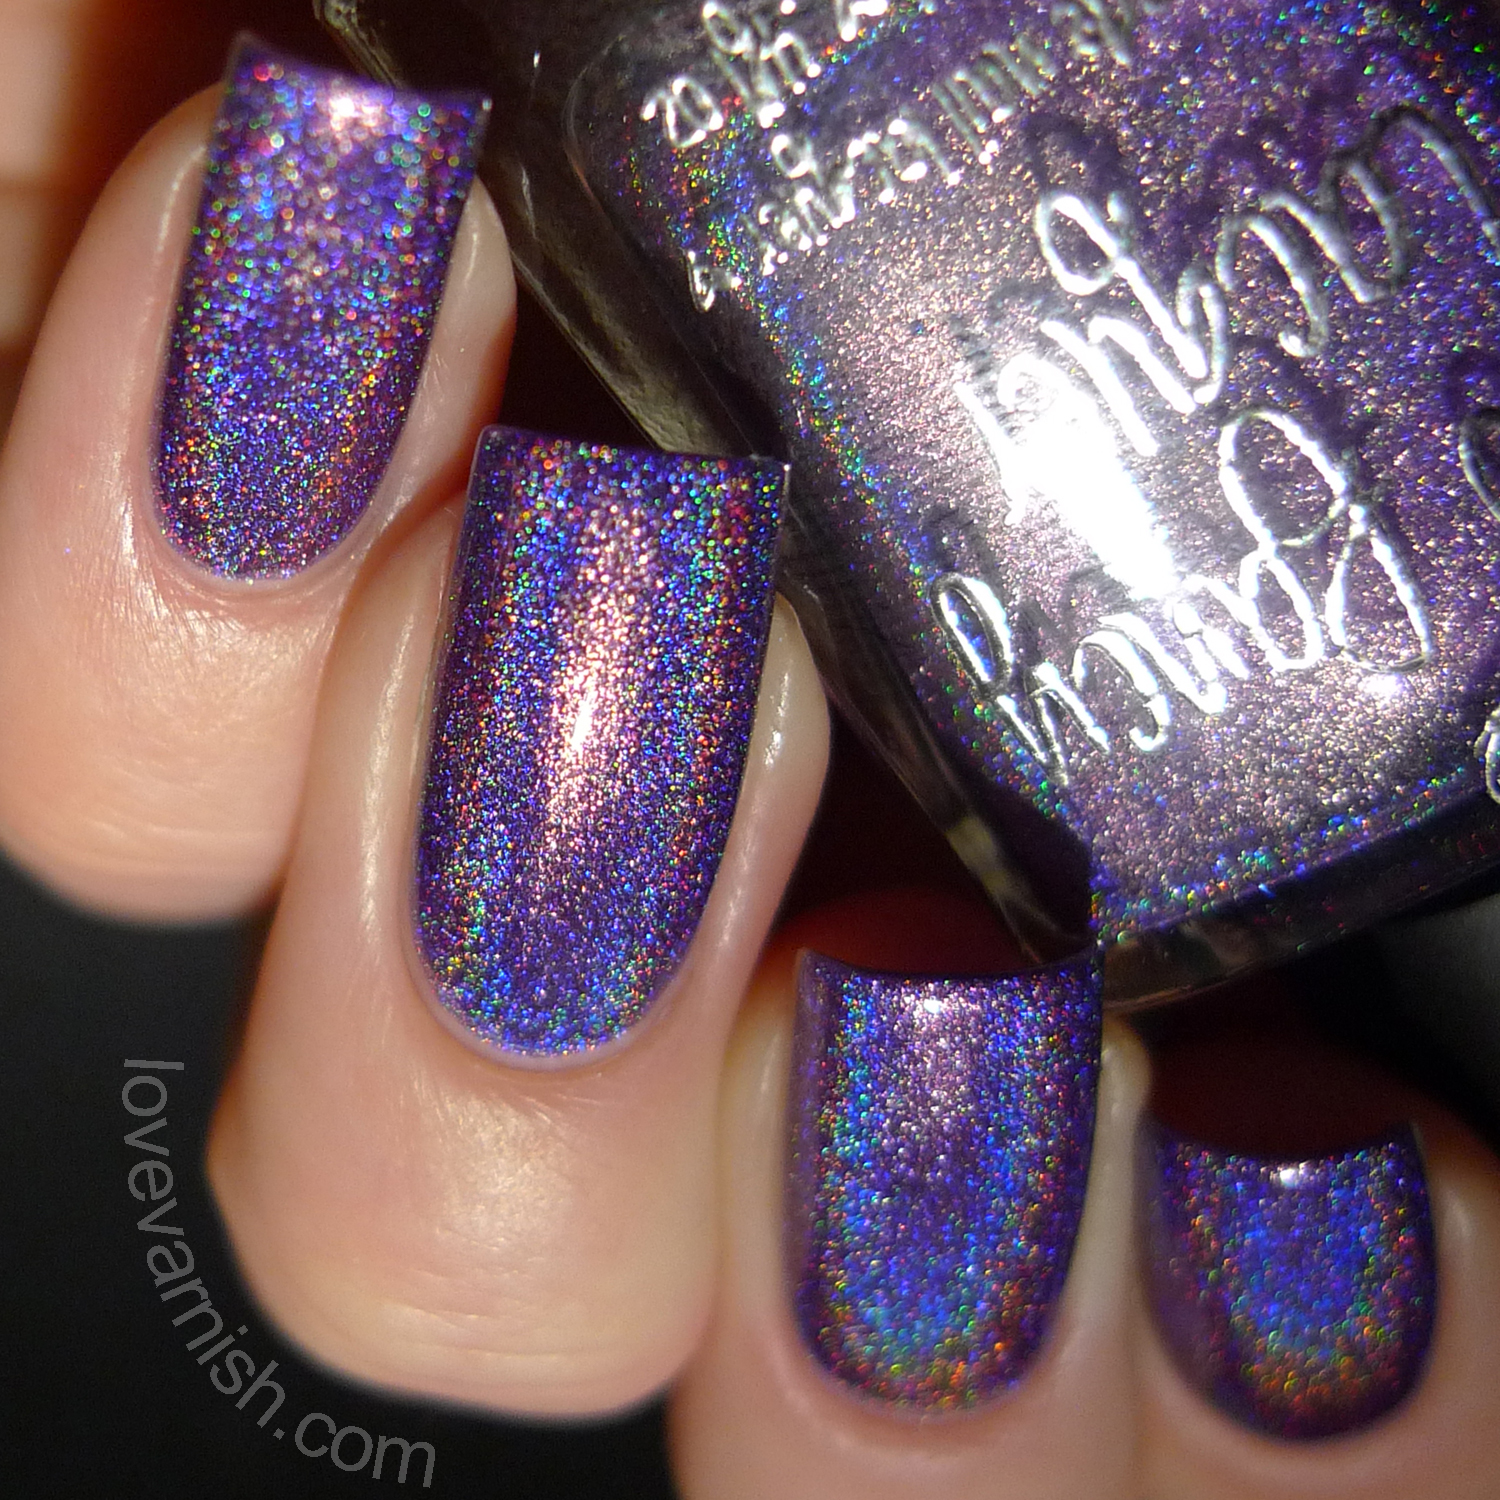 Too Fancy Lacquer Color4Nails exclusive Violette Etoilee